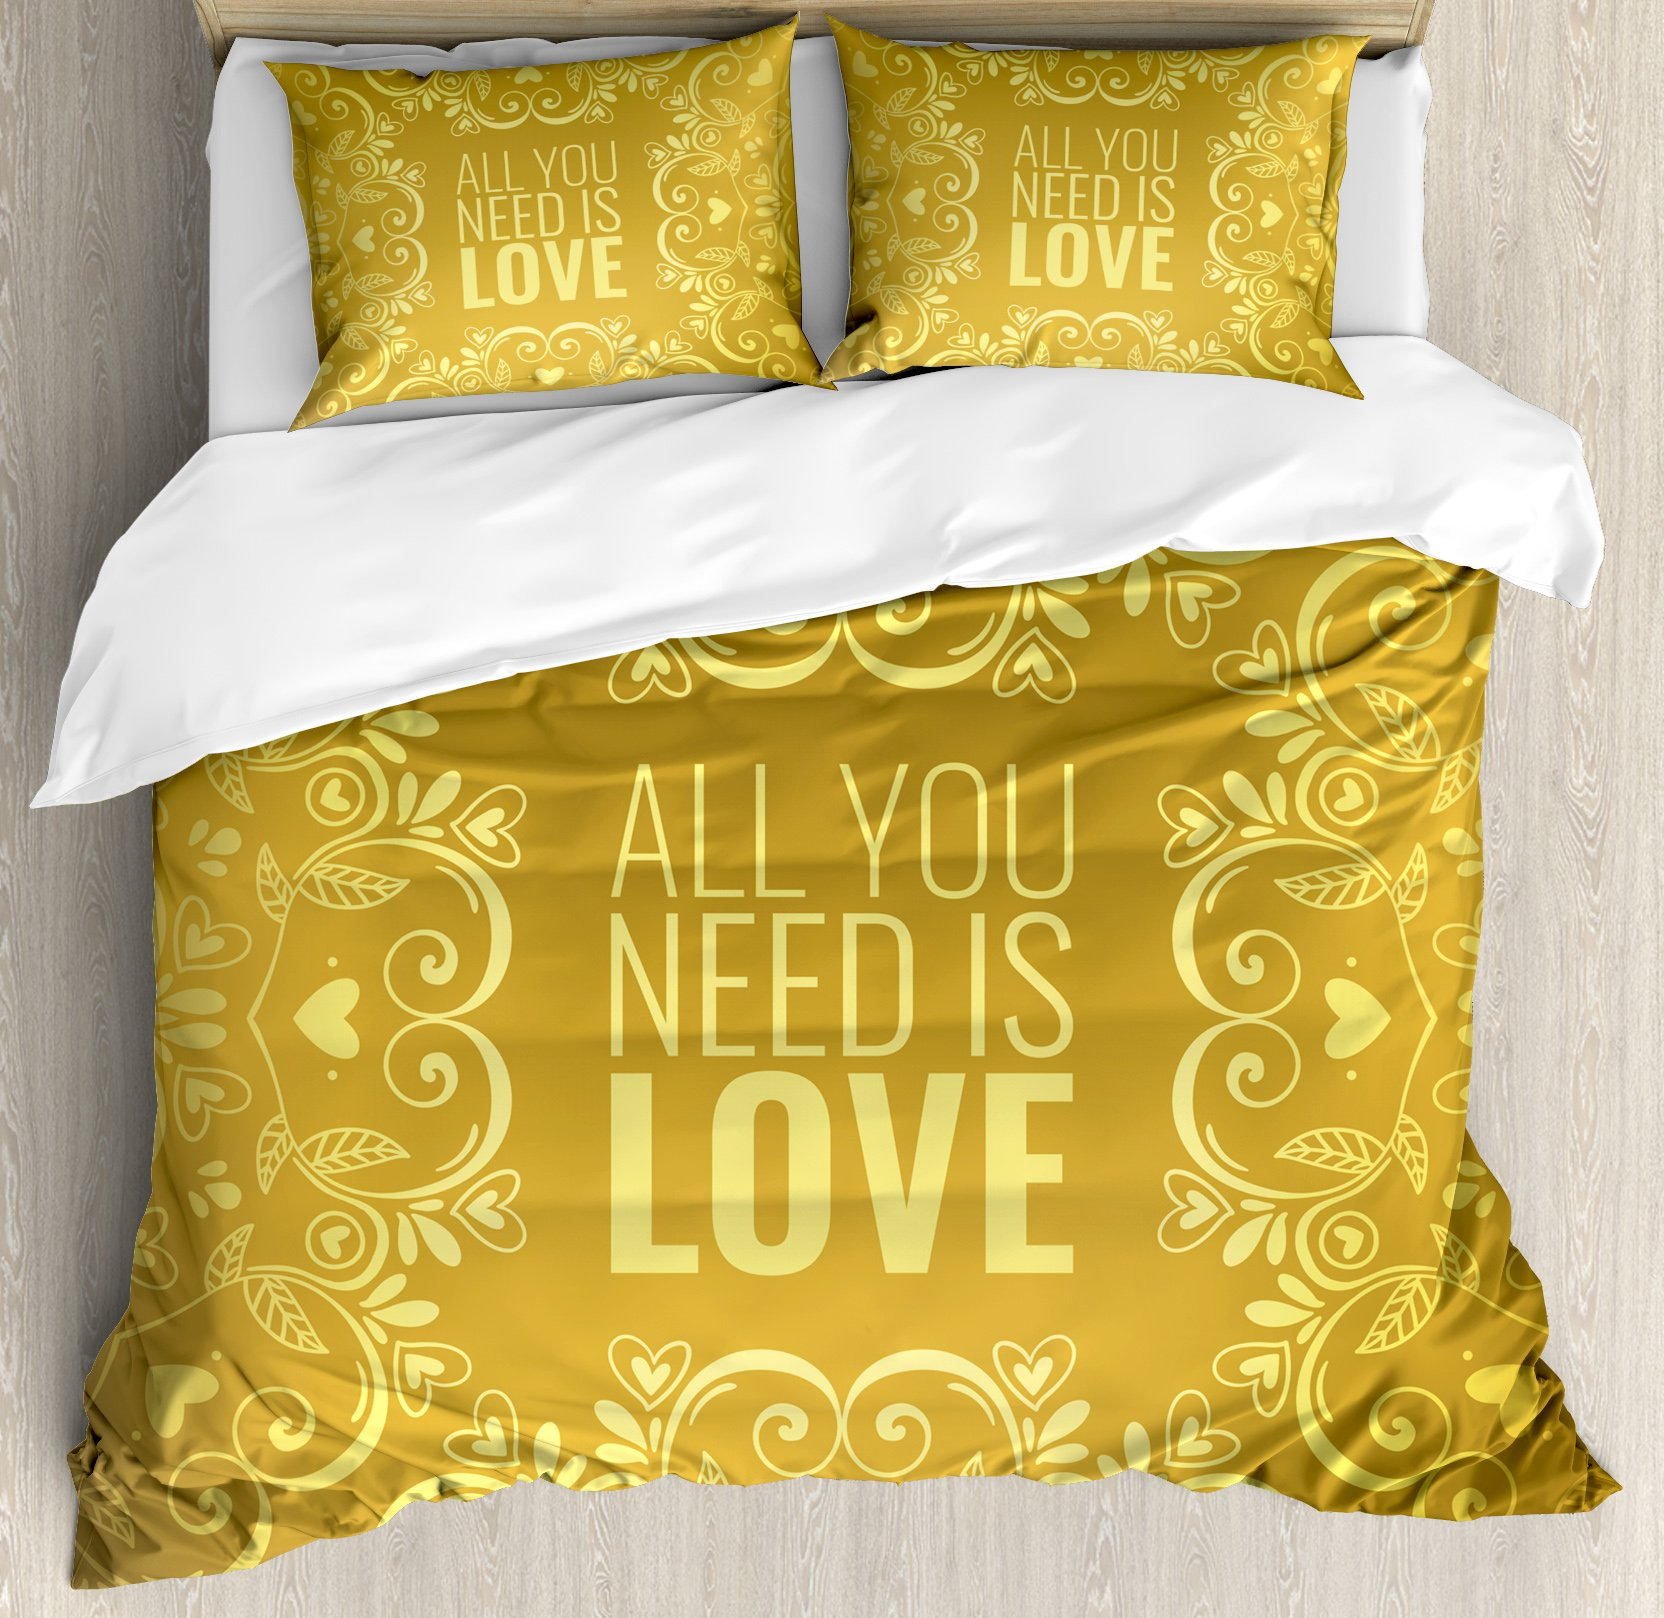 Gold Mandala King Size Duvet Cover Set by Ambesonne, Romantic Floral Round Figures Hearts Quote In Love Valentine's Day Theme Doodle, Decorative 3 Piece Bedding Set with 2 Pillow Shams, Gold